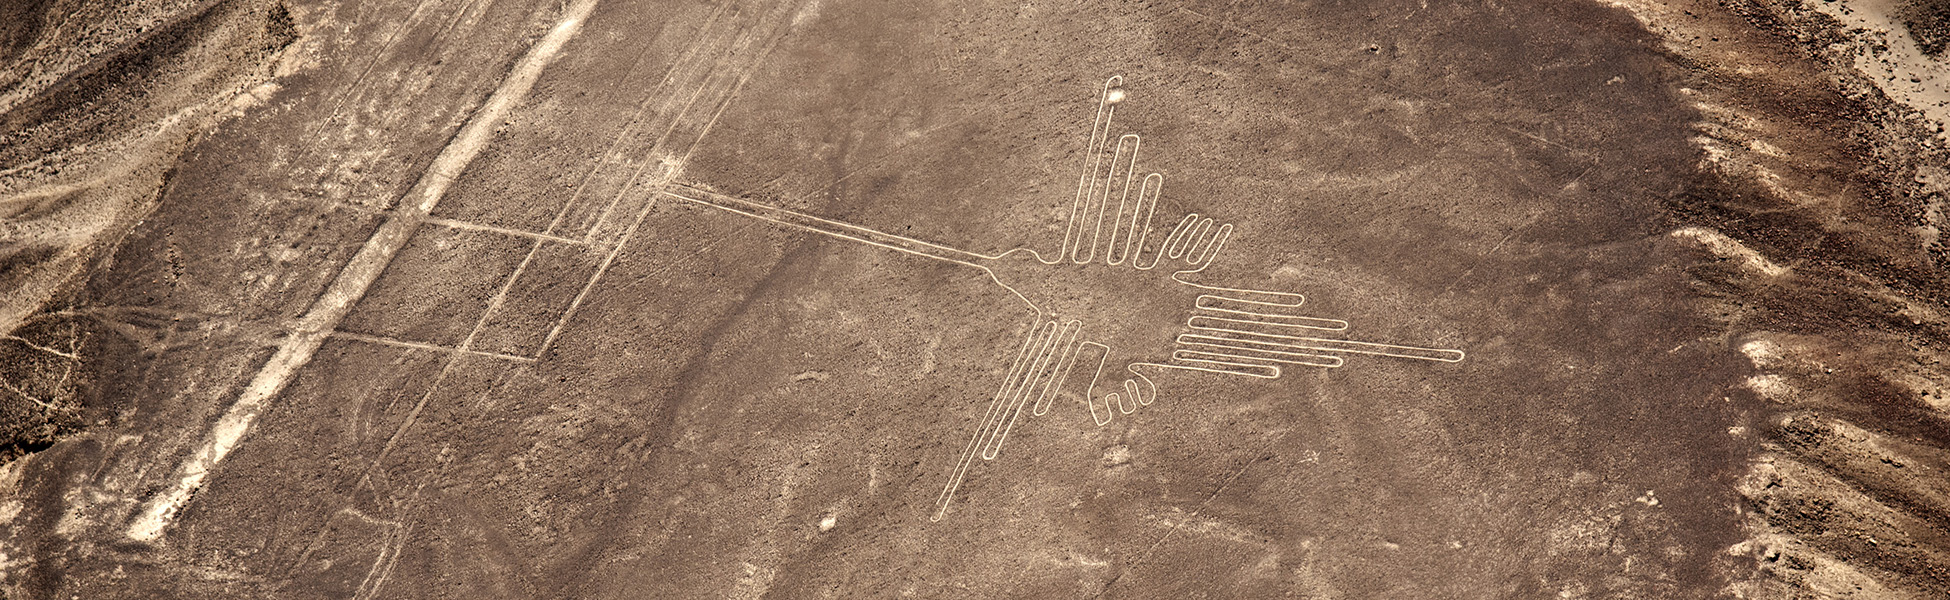 nazca lines from pisco